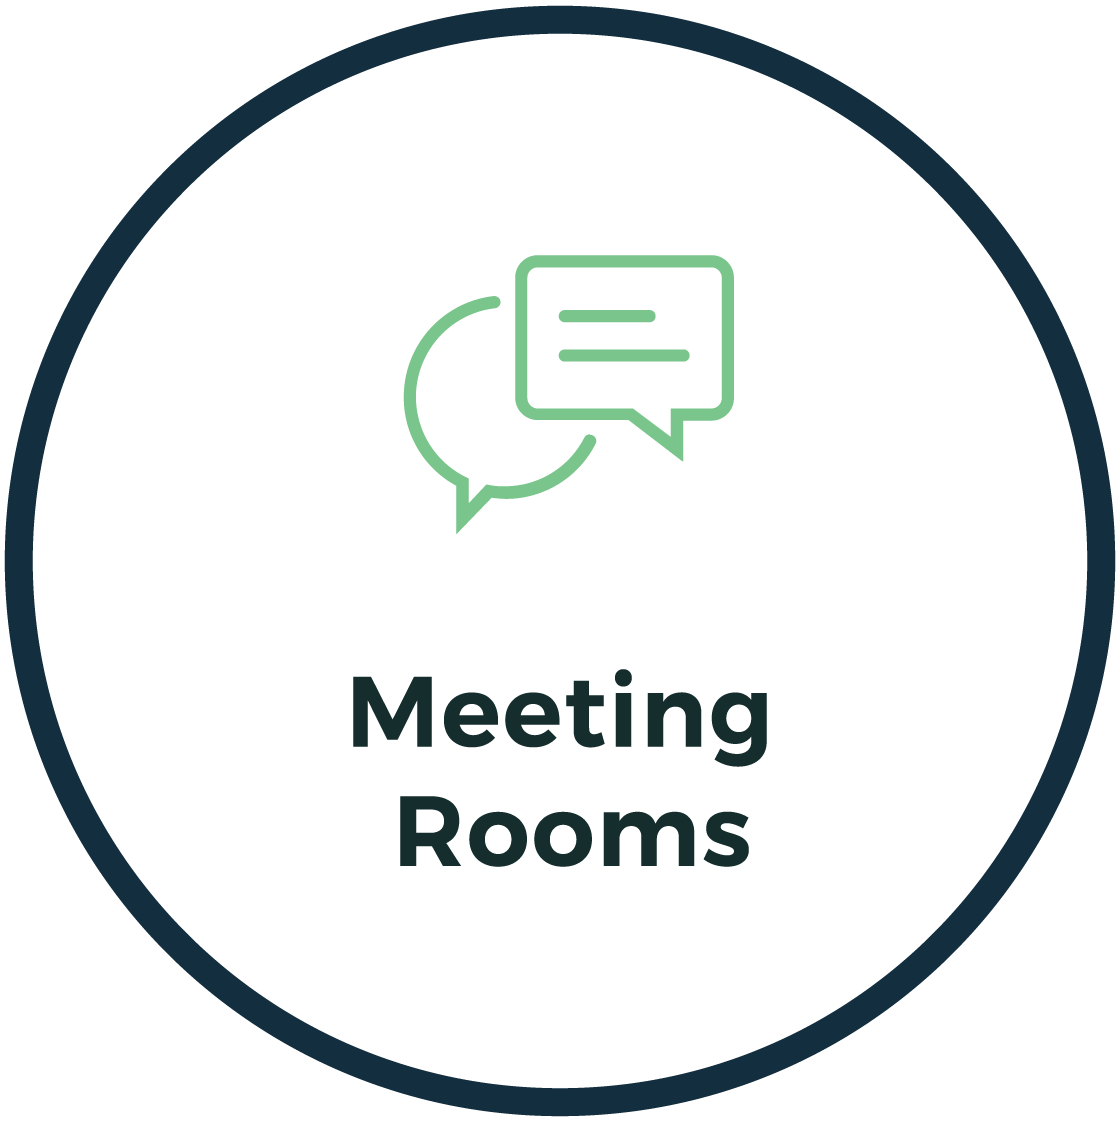 w-meeting-rooms